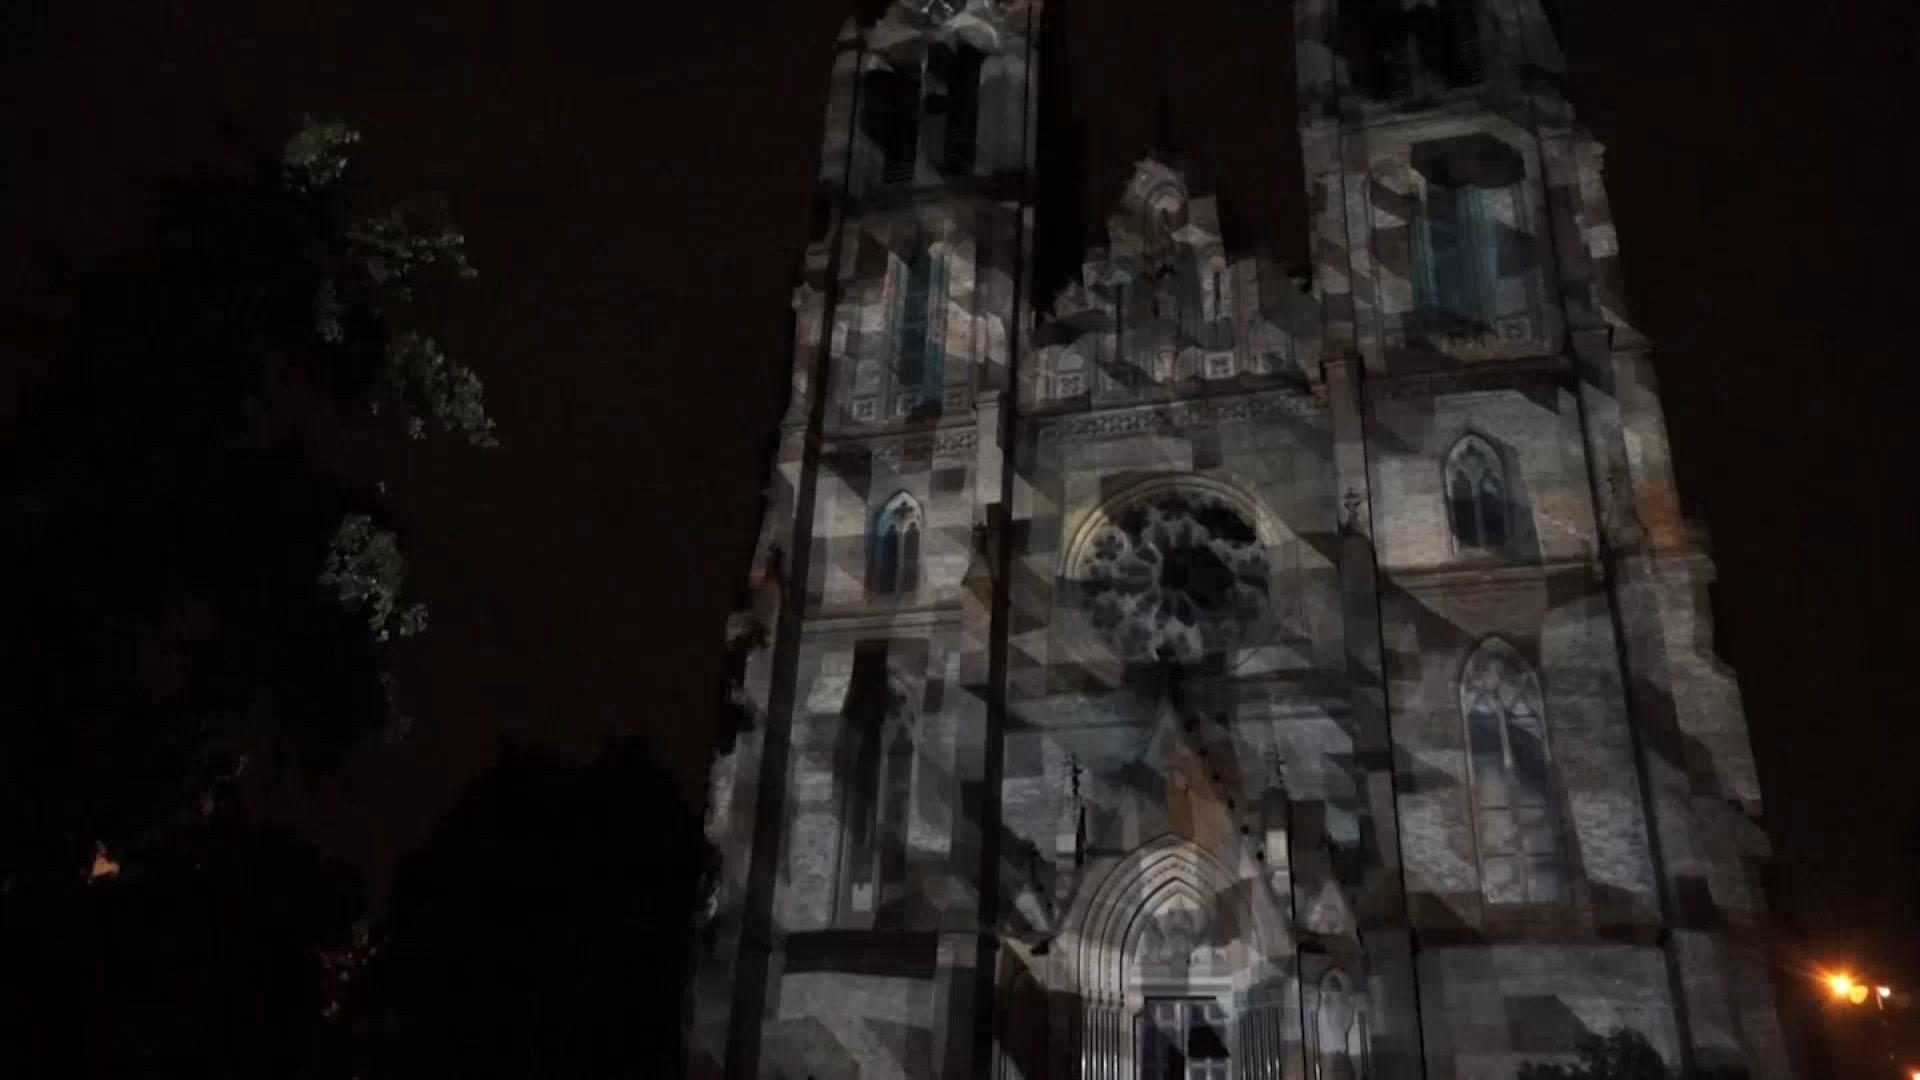 Light Festival Transforms Prague's Landmarks into Psychedelic Works of Art